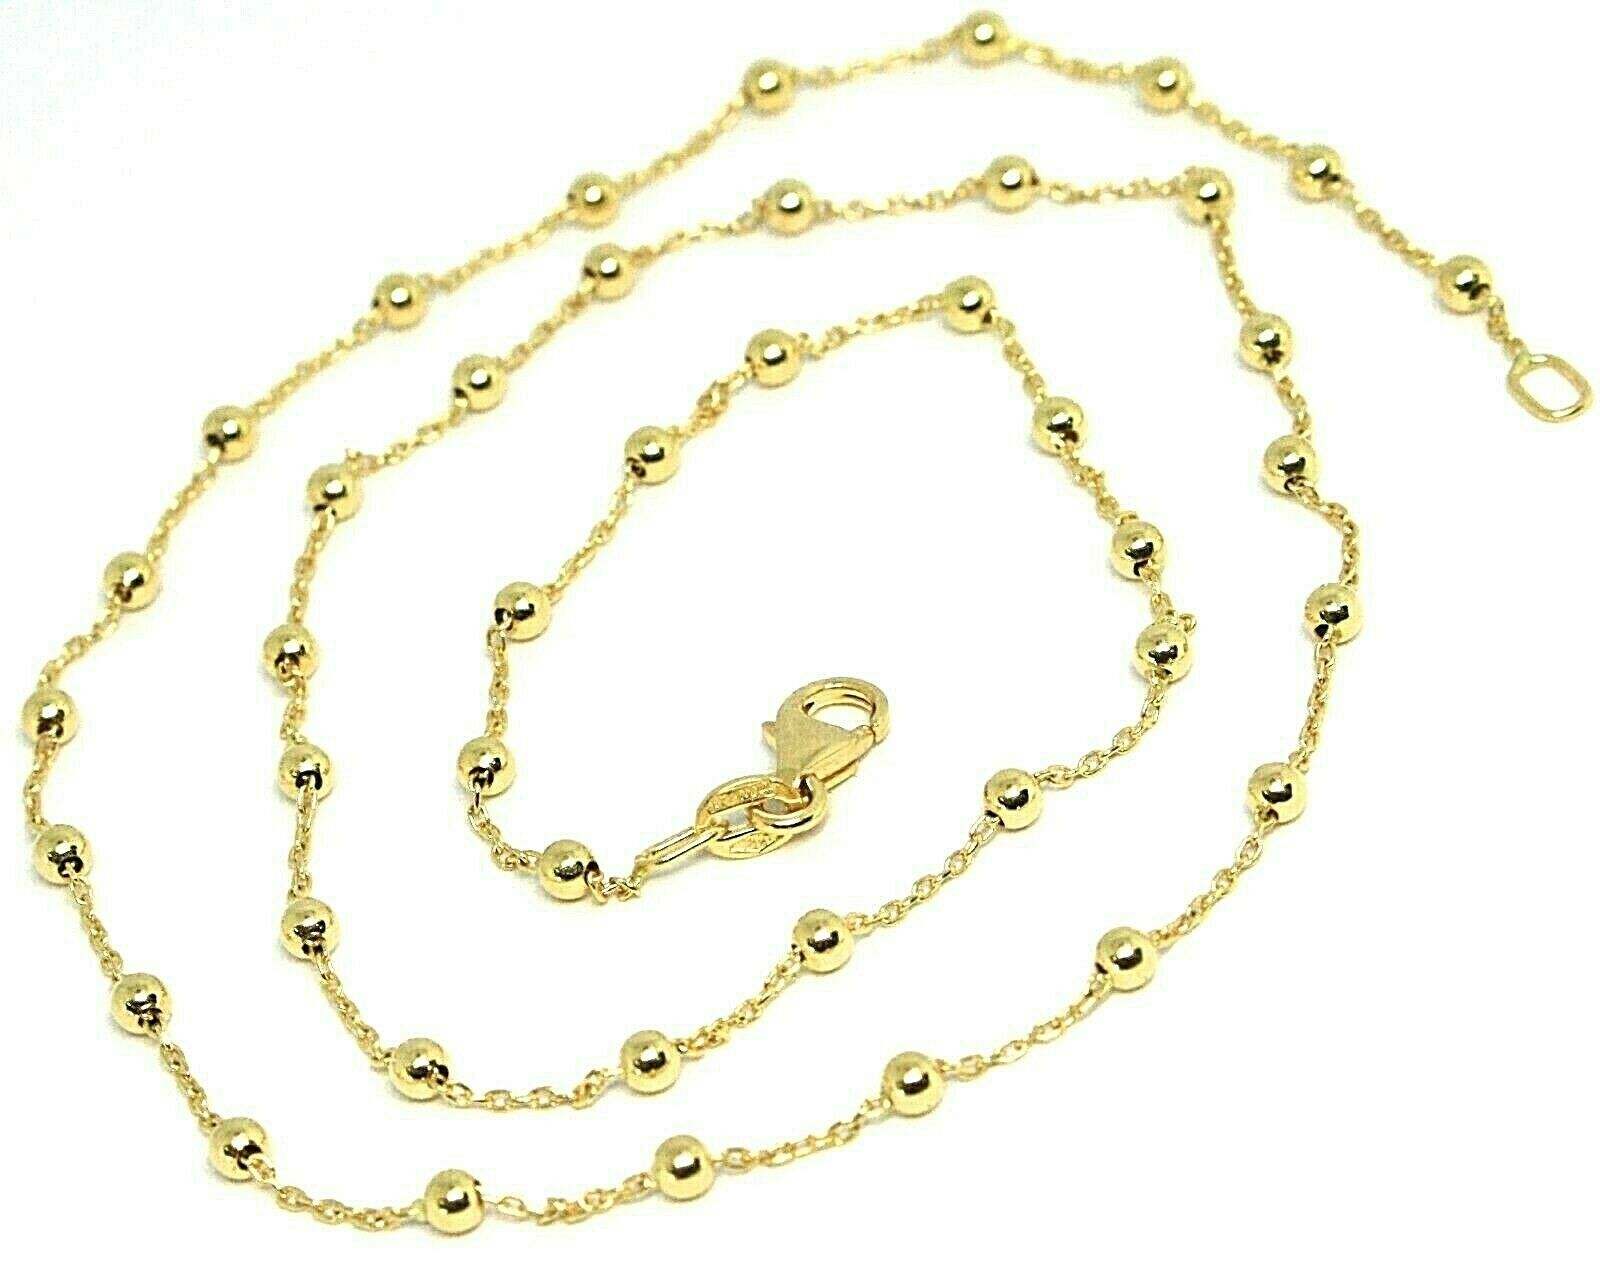 18K YELLOW GOLD MINI BALLS CHAIN 2 MM, 18 INCHES SPHERE ALTERNATE OVAL ROLO LINK